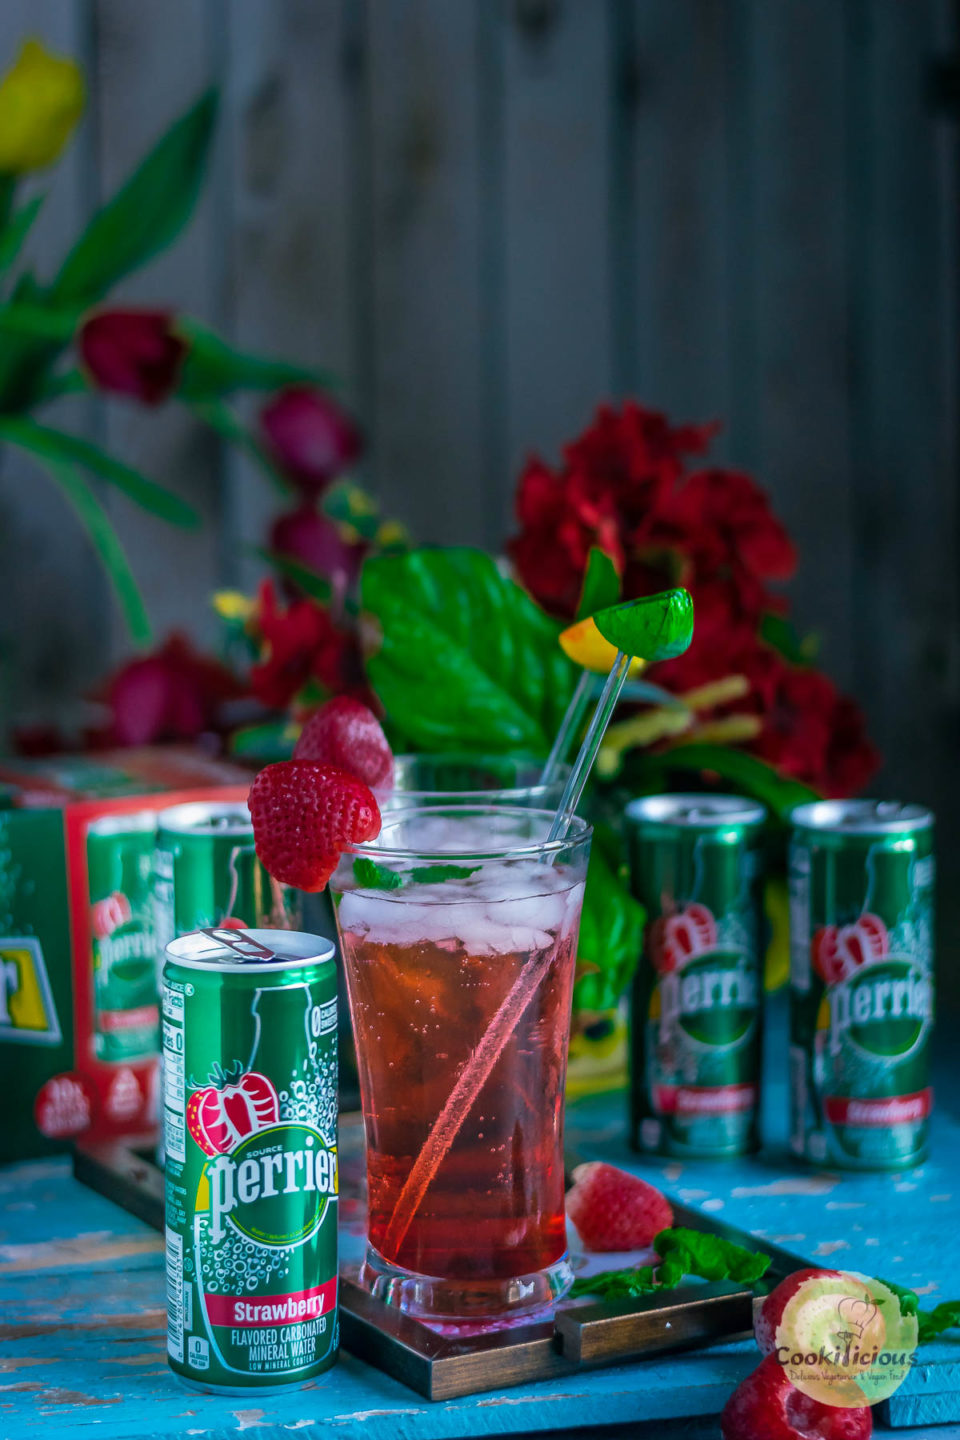 many cans of Perrier® Flavors around a glass of fruit punch